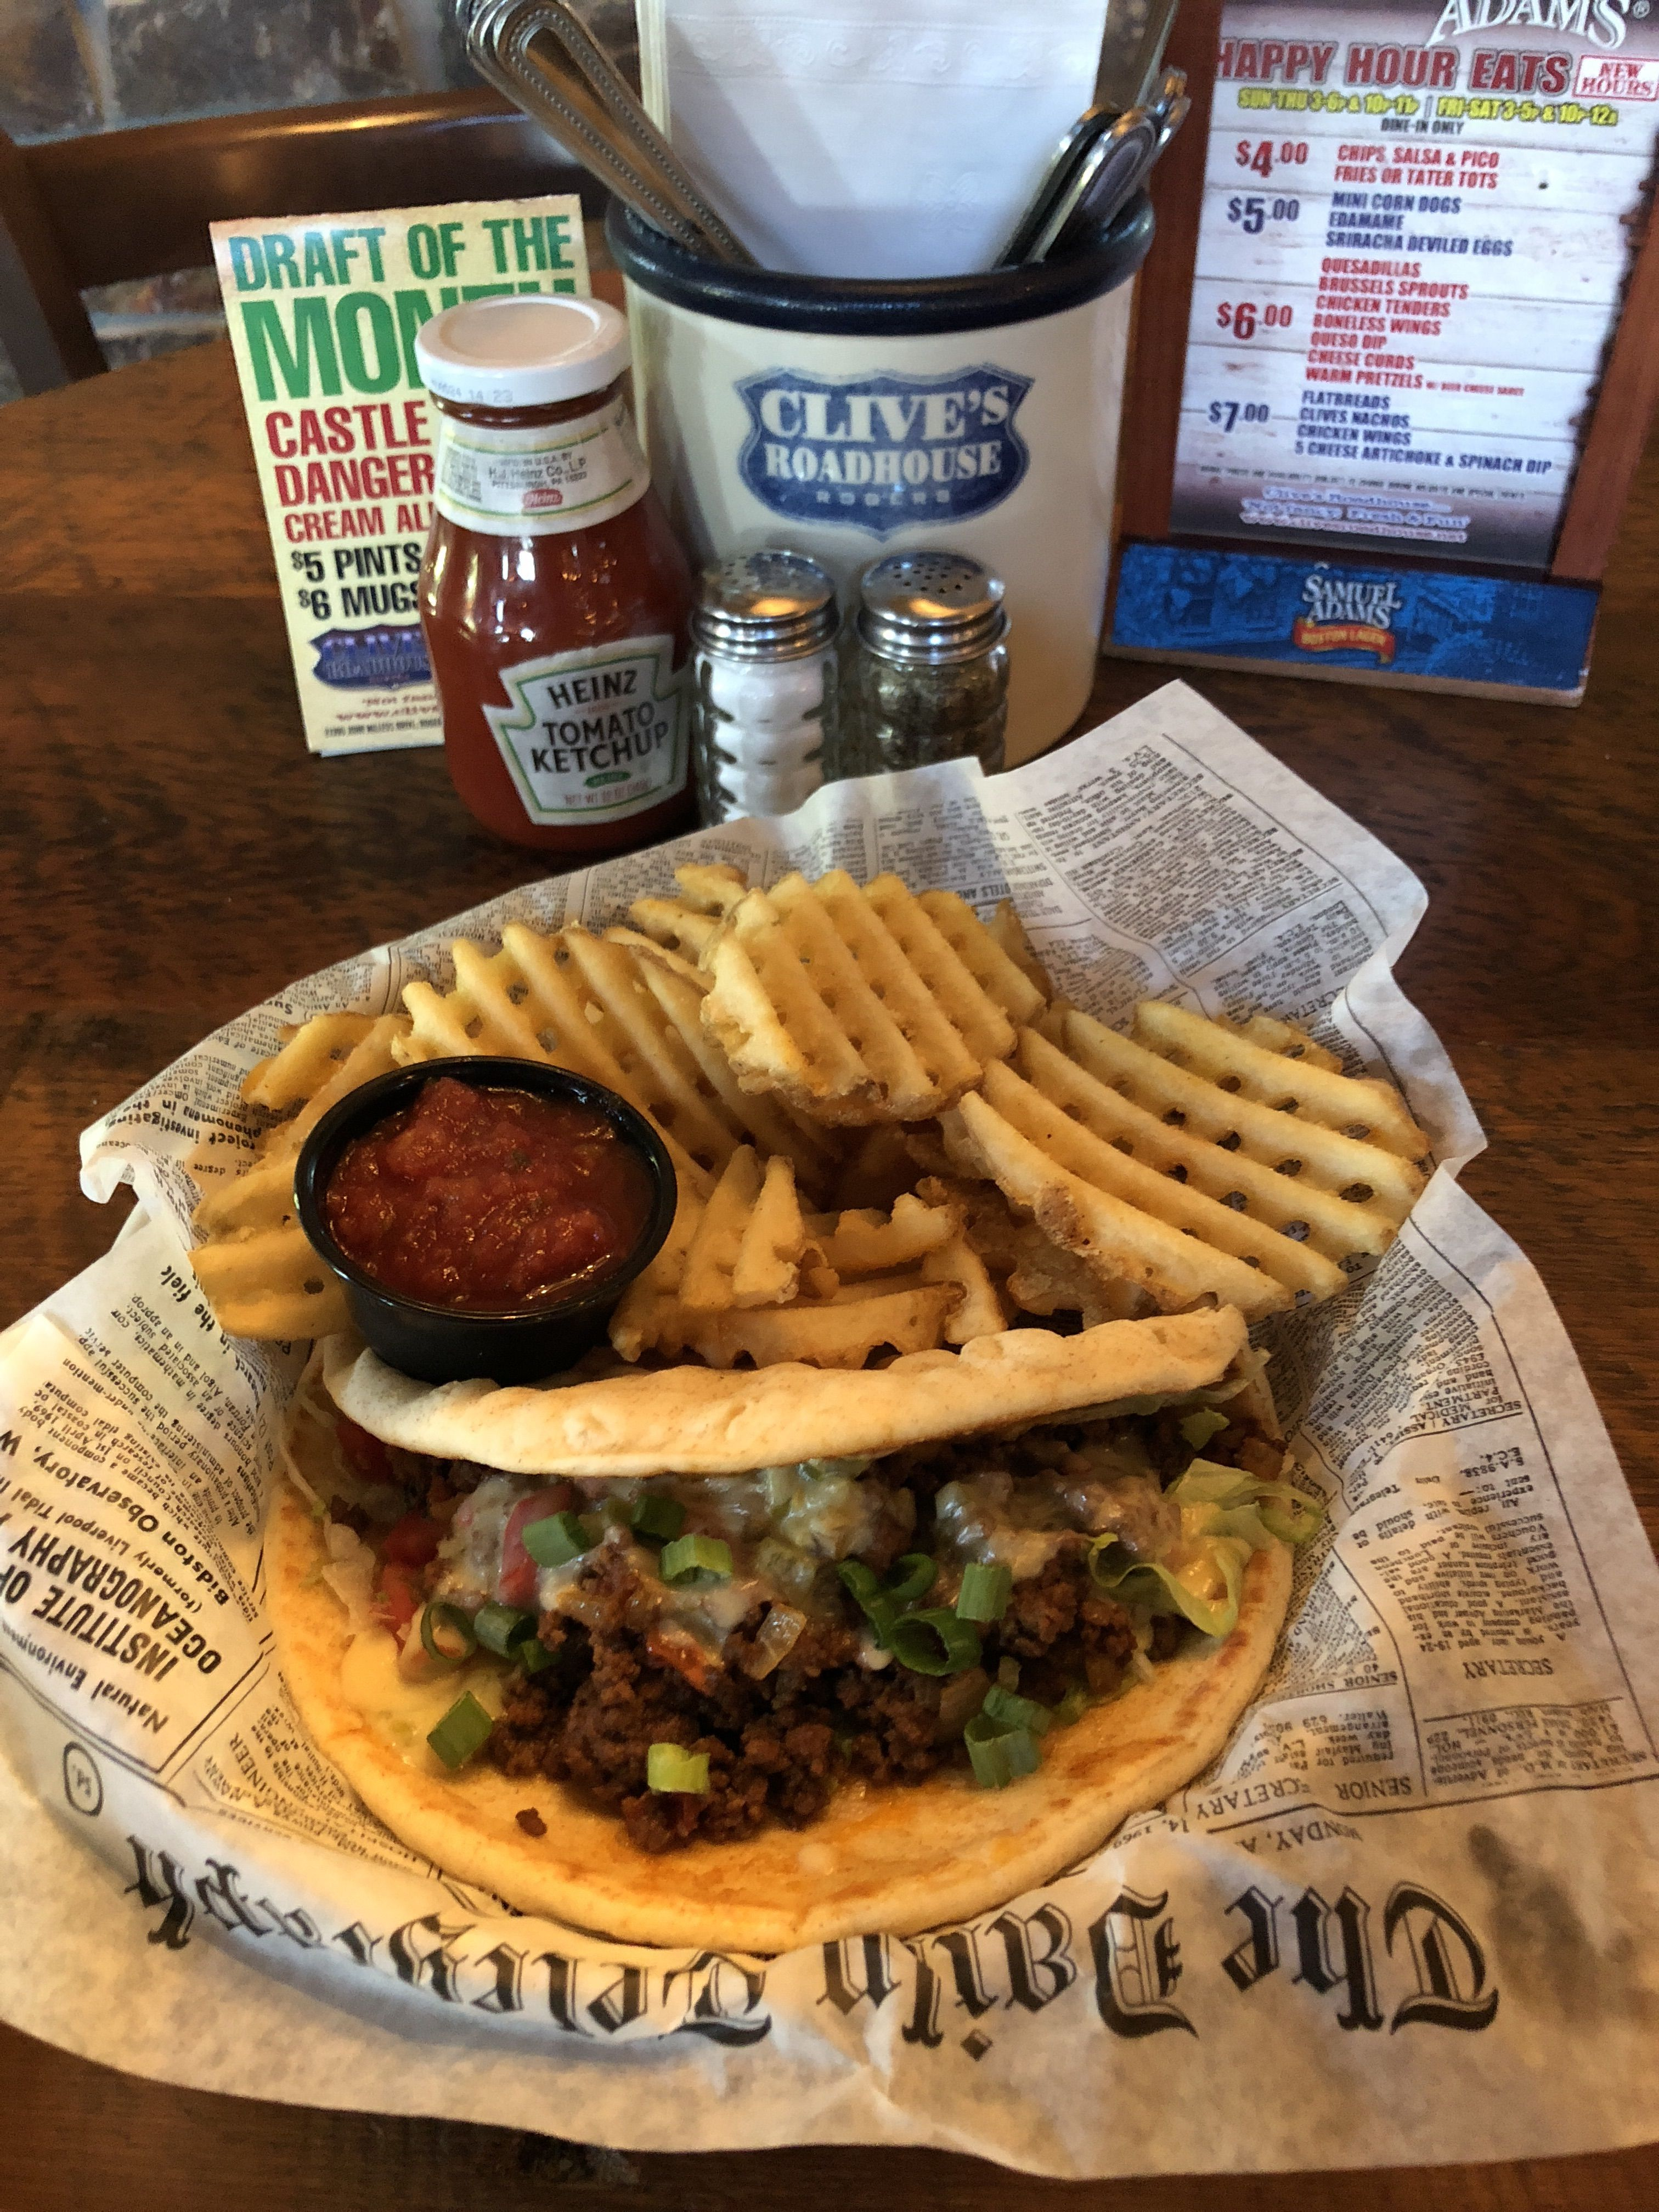 Today S Lunch Special Is A Taco Pita Food Clivesroadhouse Foo Goodfood Dining Restaurants